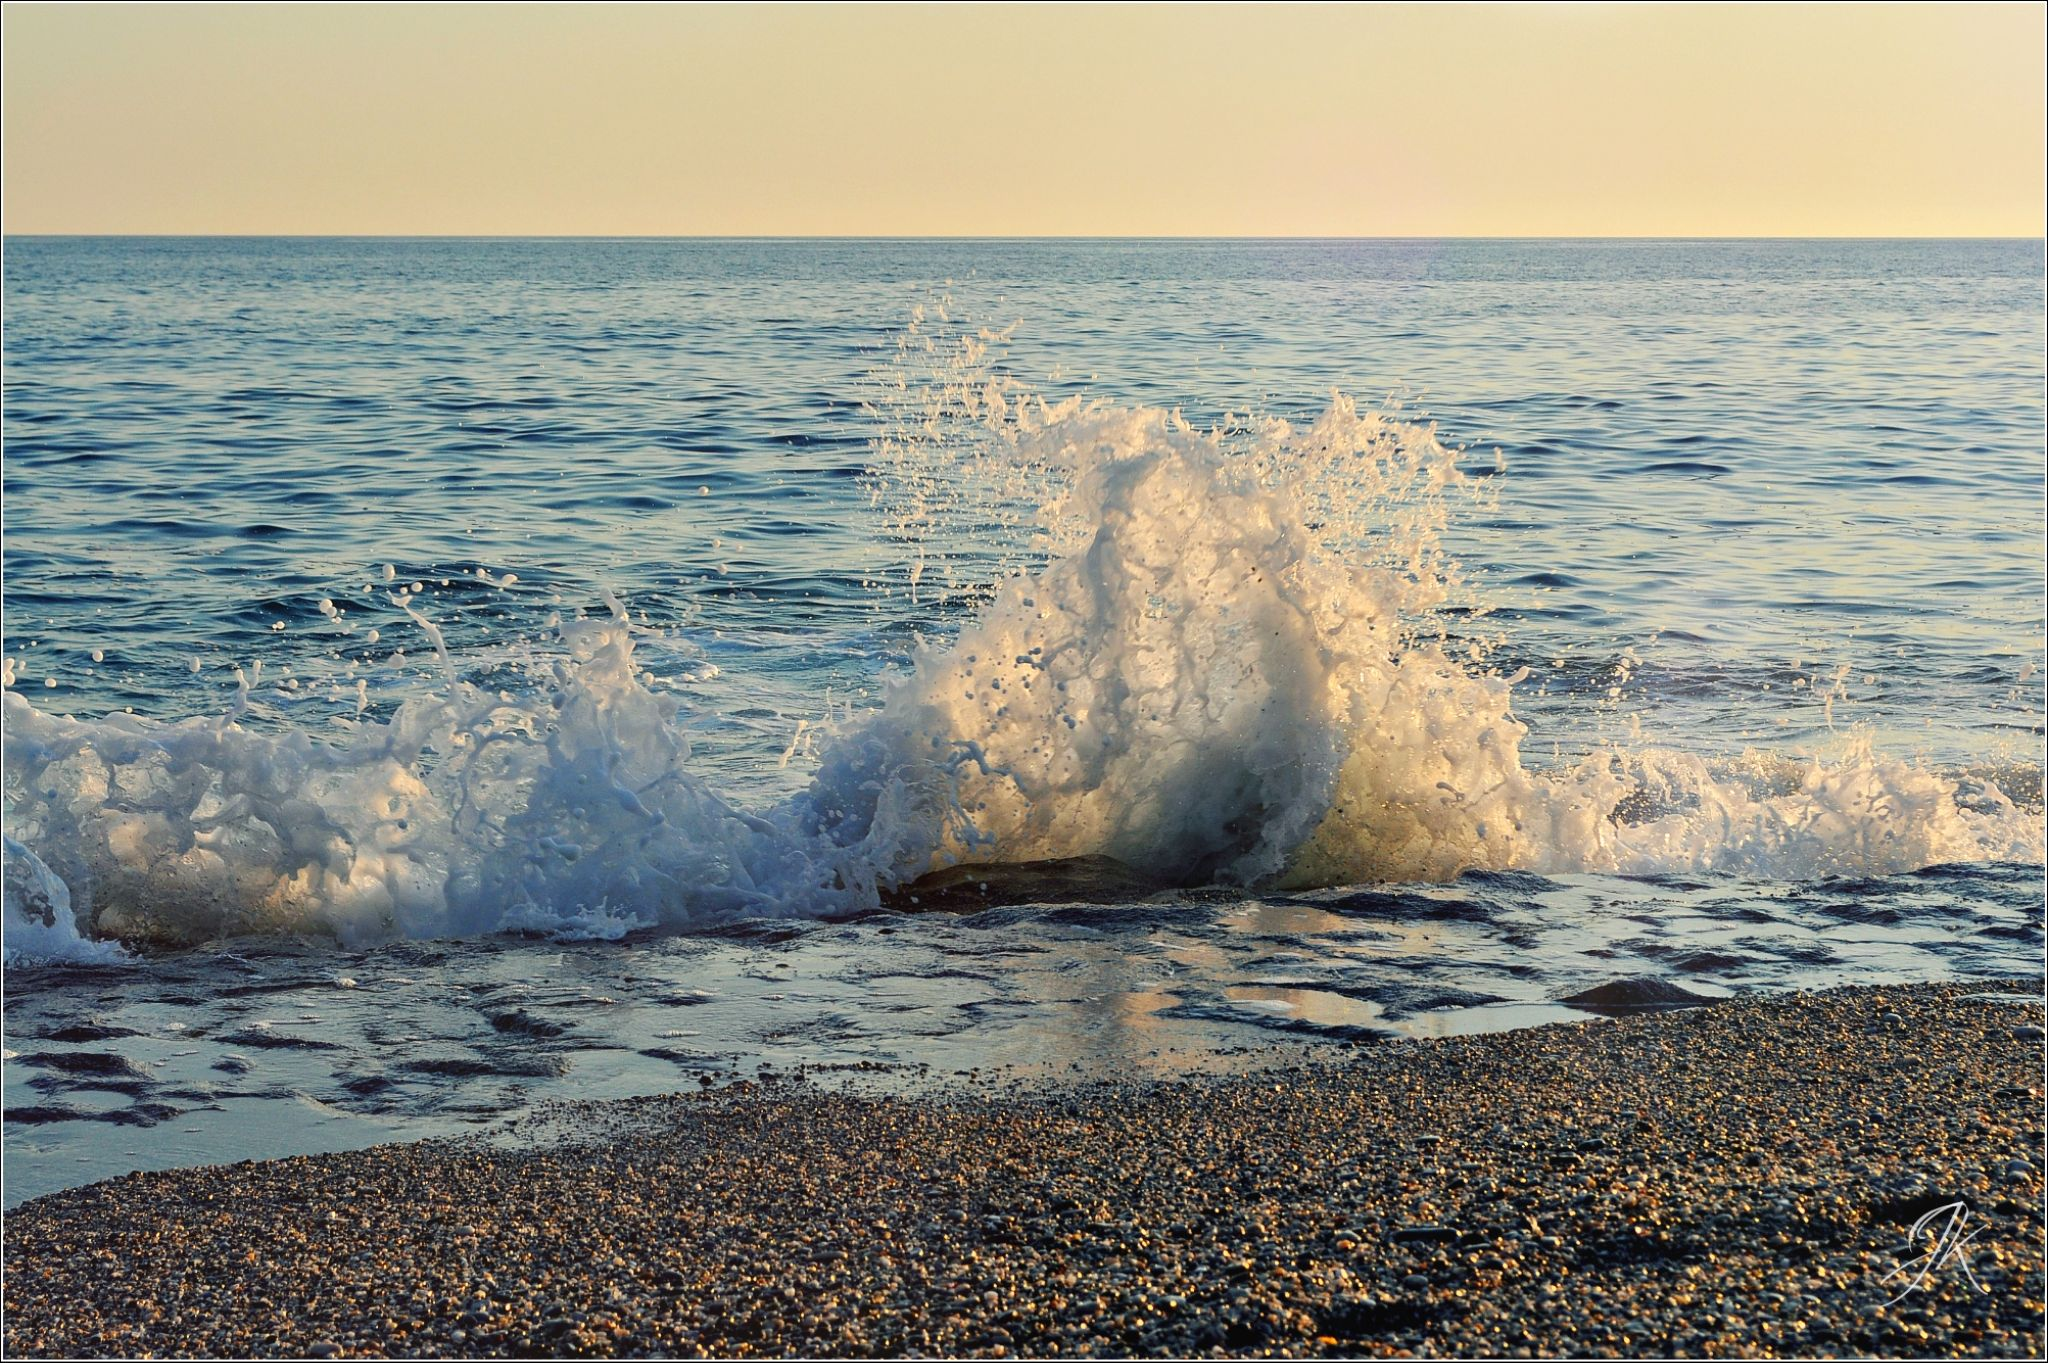 Sea by JK Photography